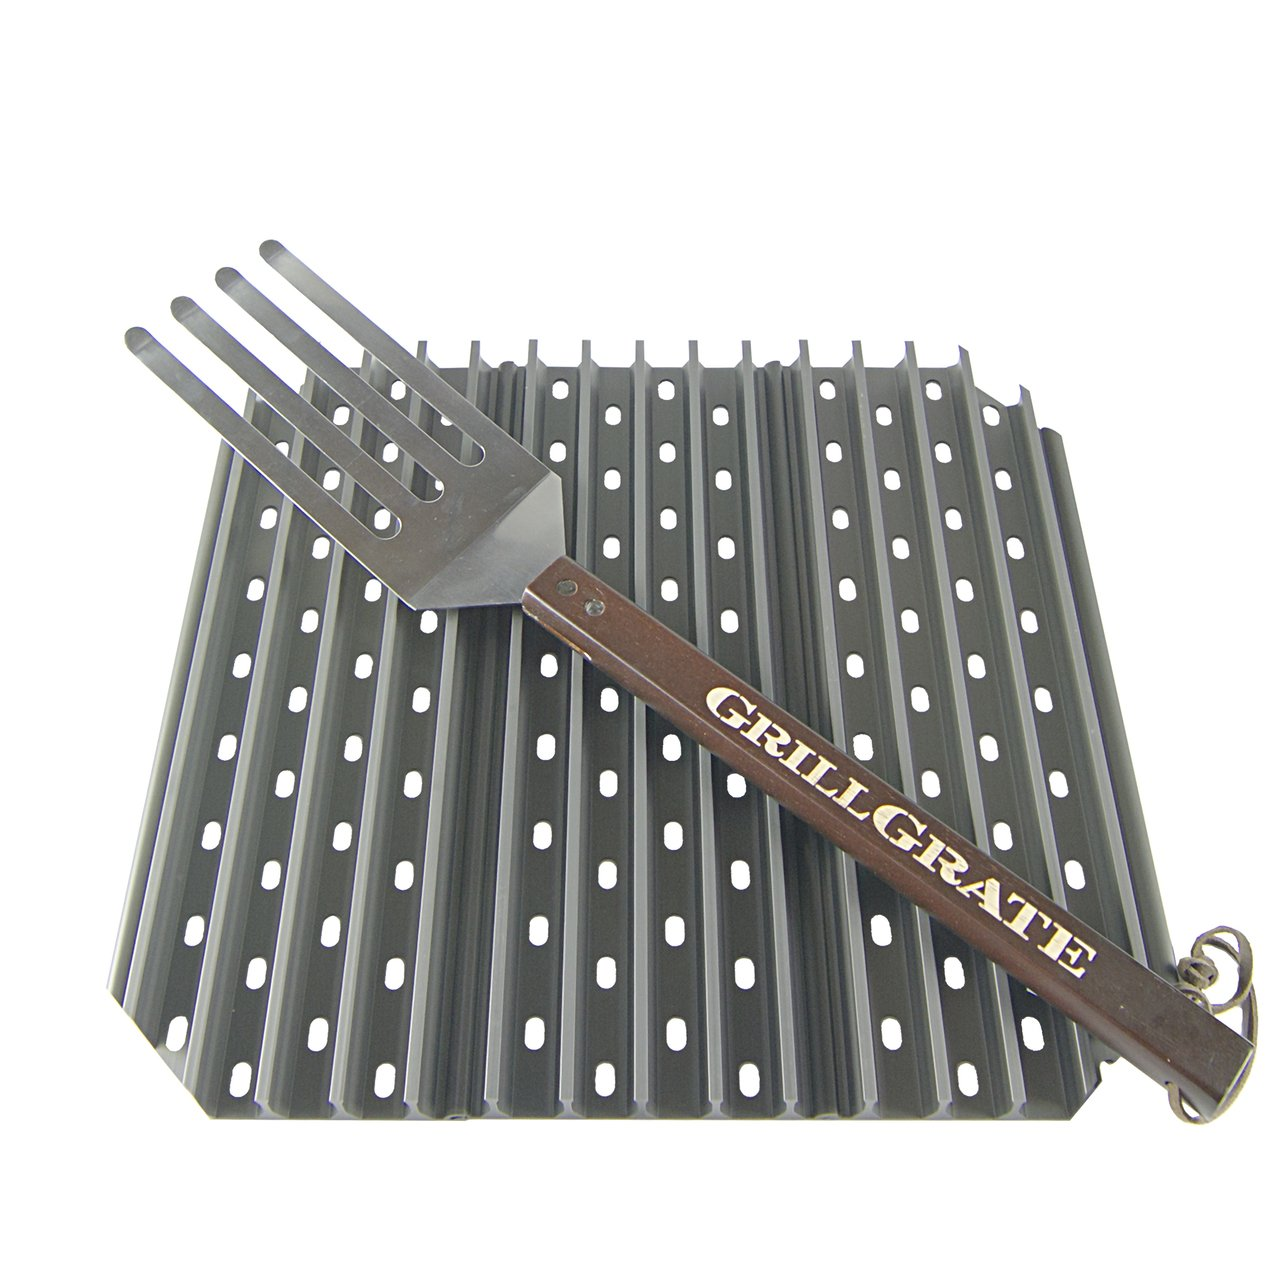 GrillGrate for Large Big Green Egg by GrillGrate